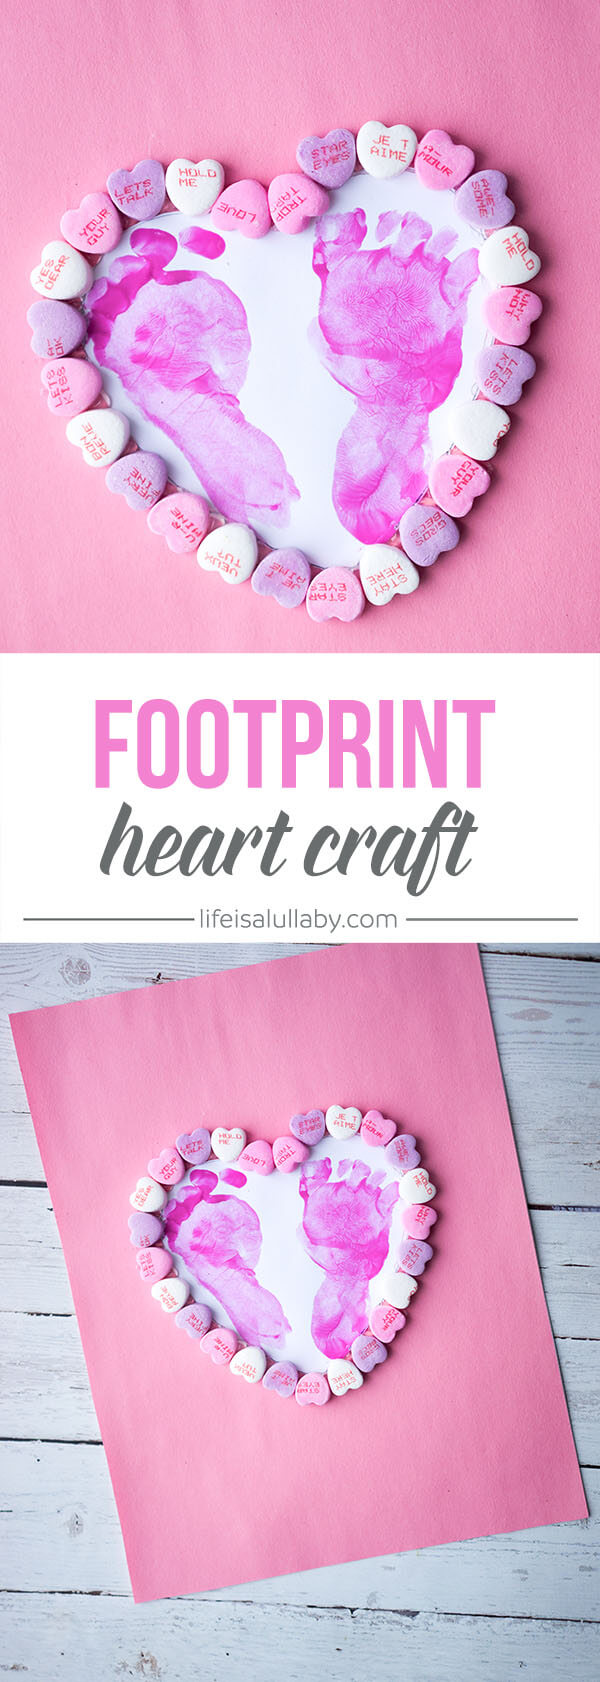 This footprint heart craft is SO CUTE! This is such a nice idea for Valentines Day or Mothers day as a gift or can be framed.